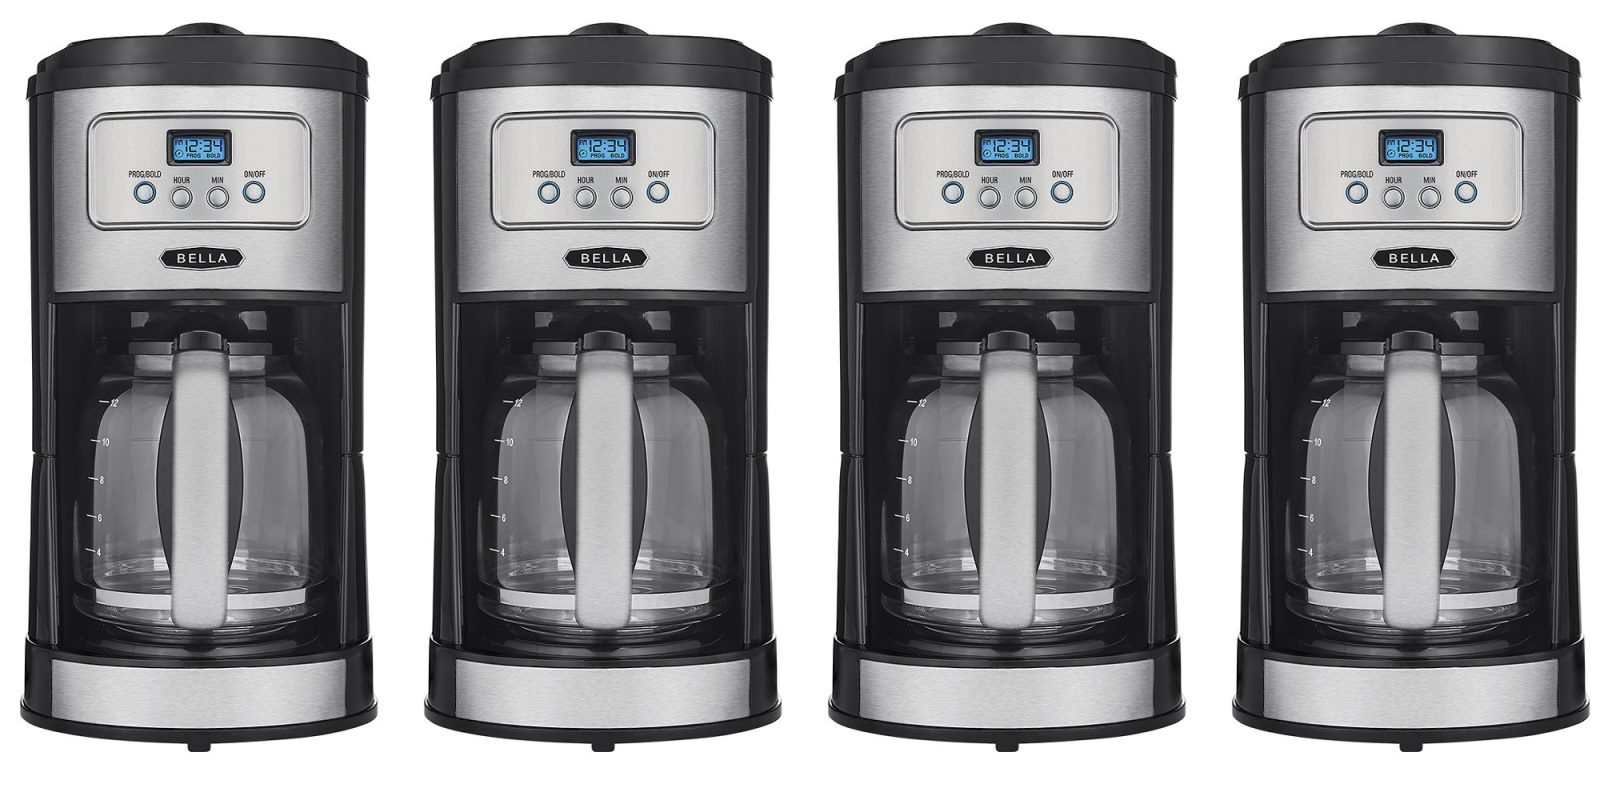 Bella's 12-cup Coffee Maker with pause-and-serve drops to $20 today (50% off)